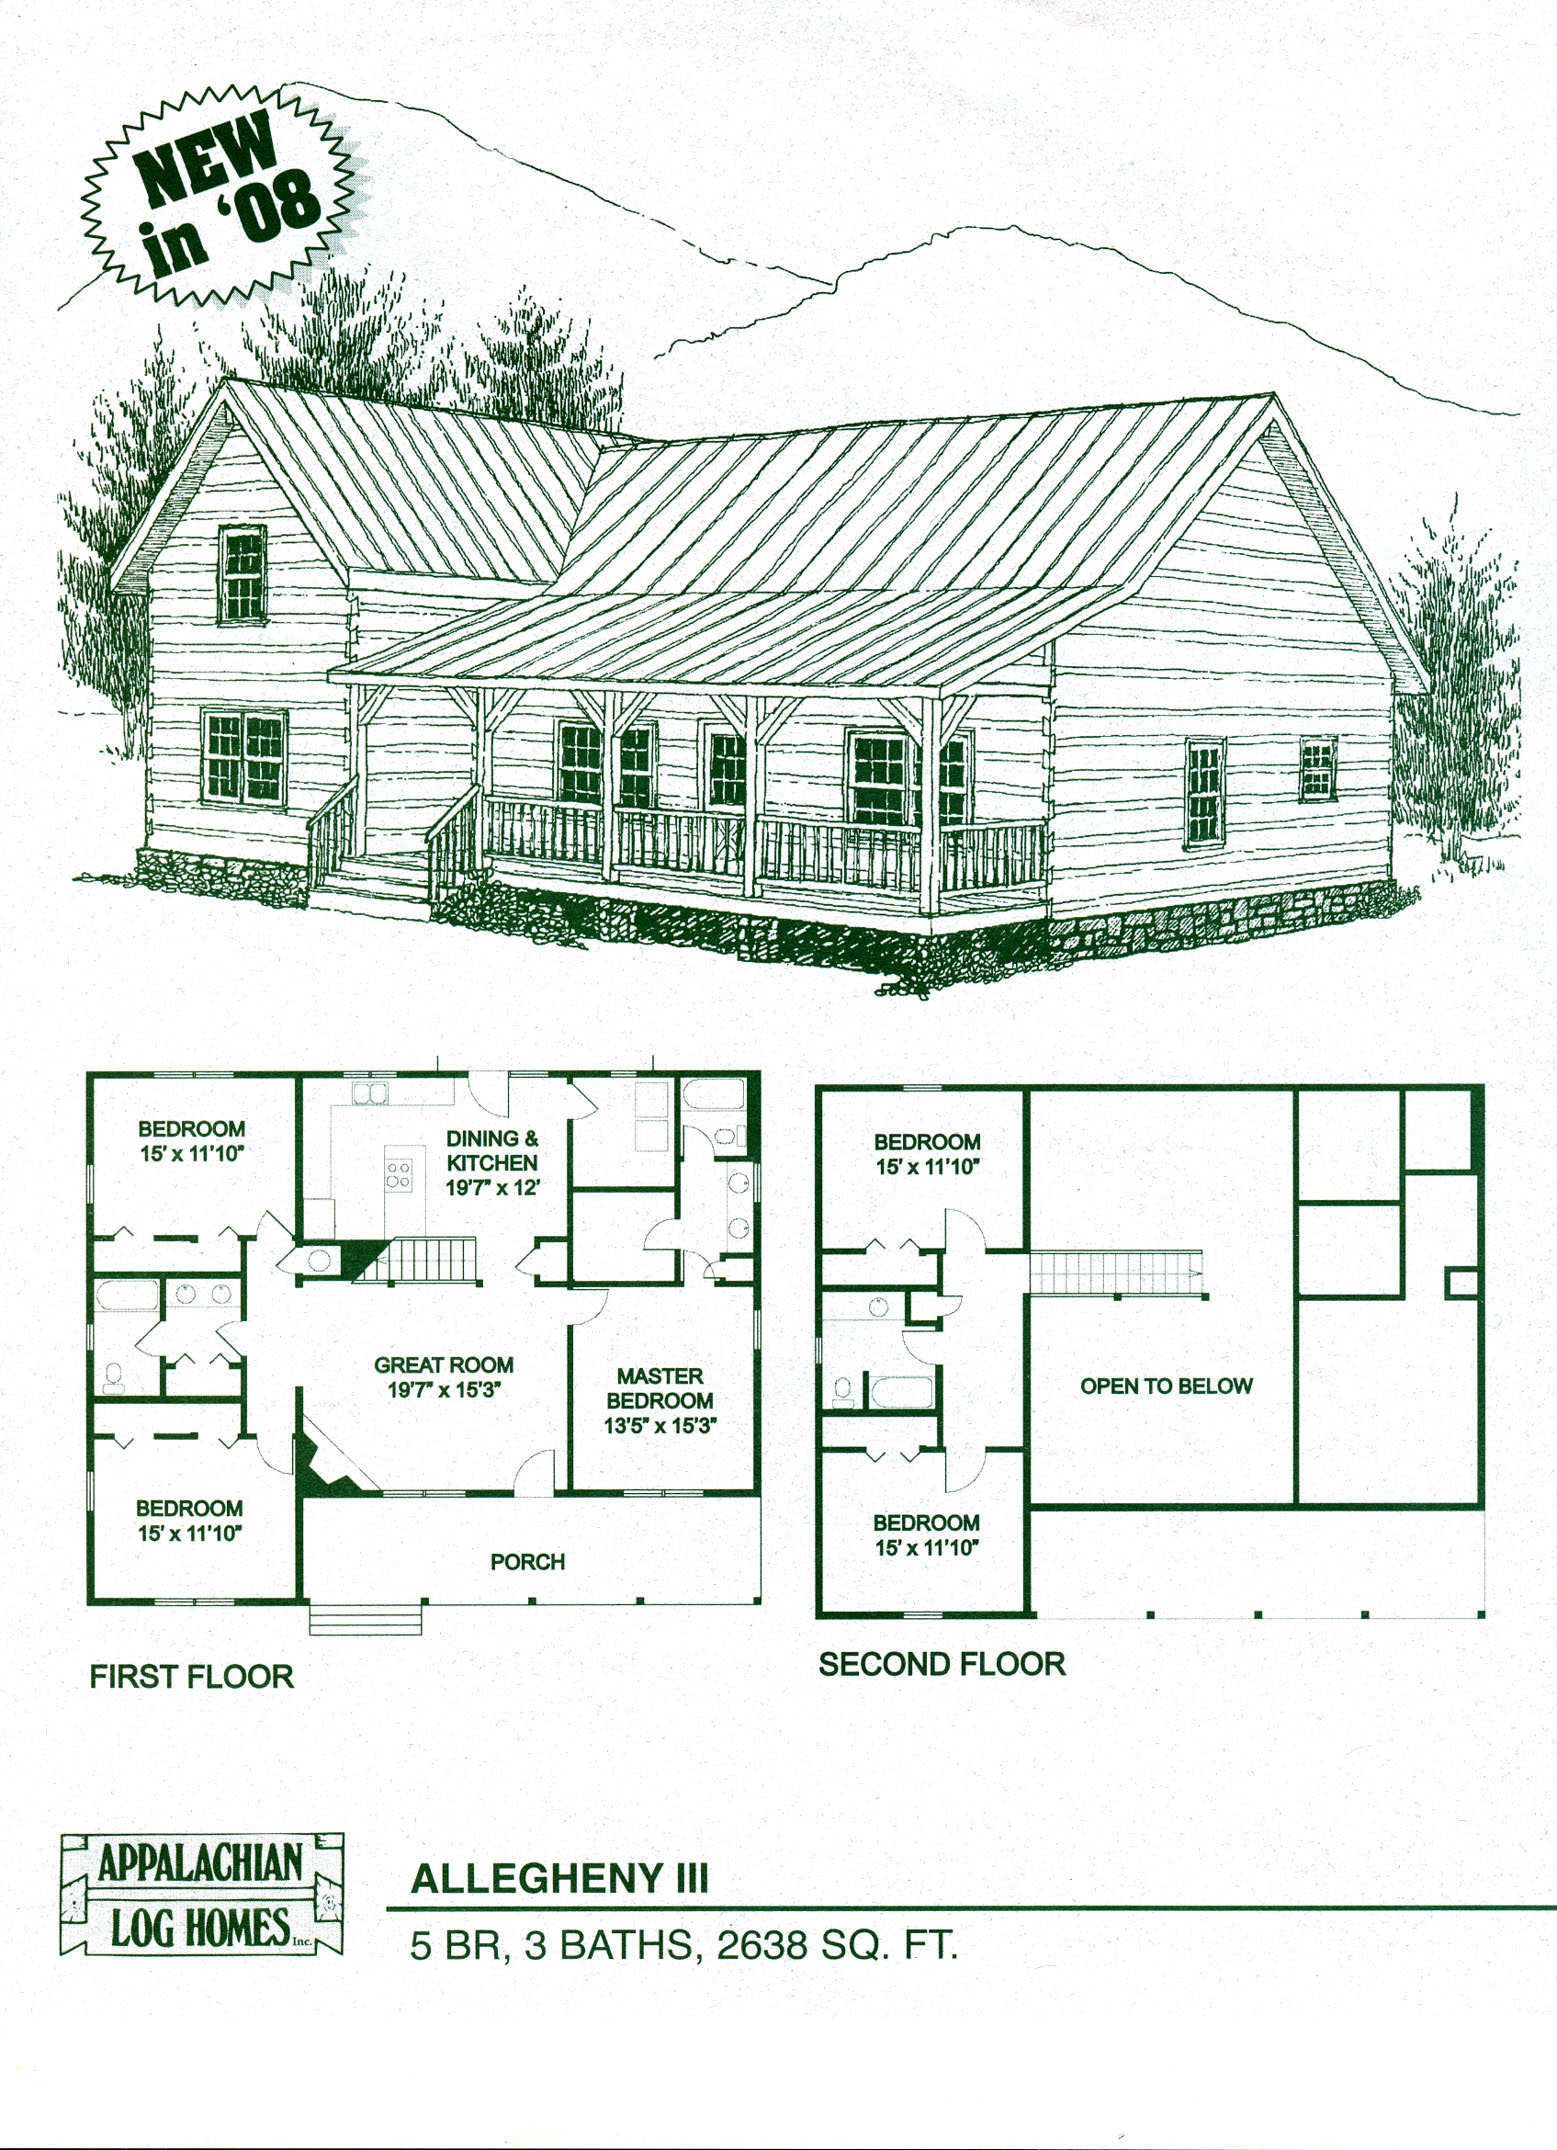 Simple log cabin drawing at free for for Basic log cabin plans